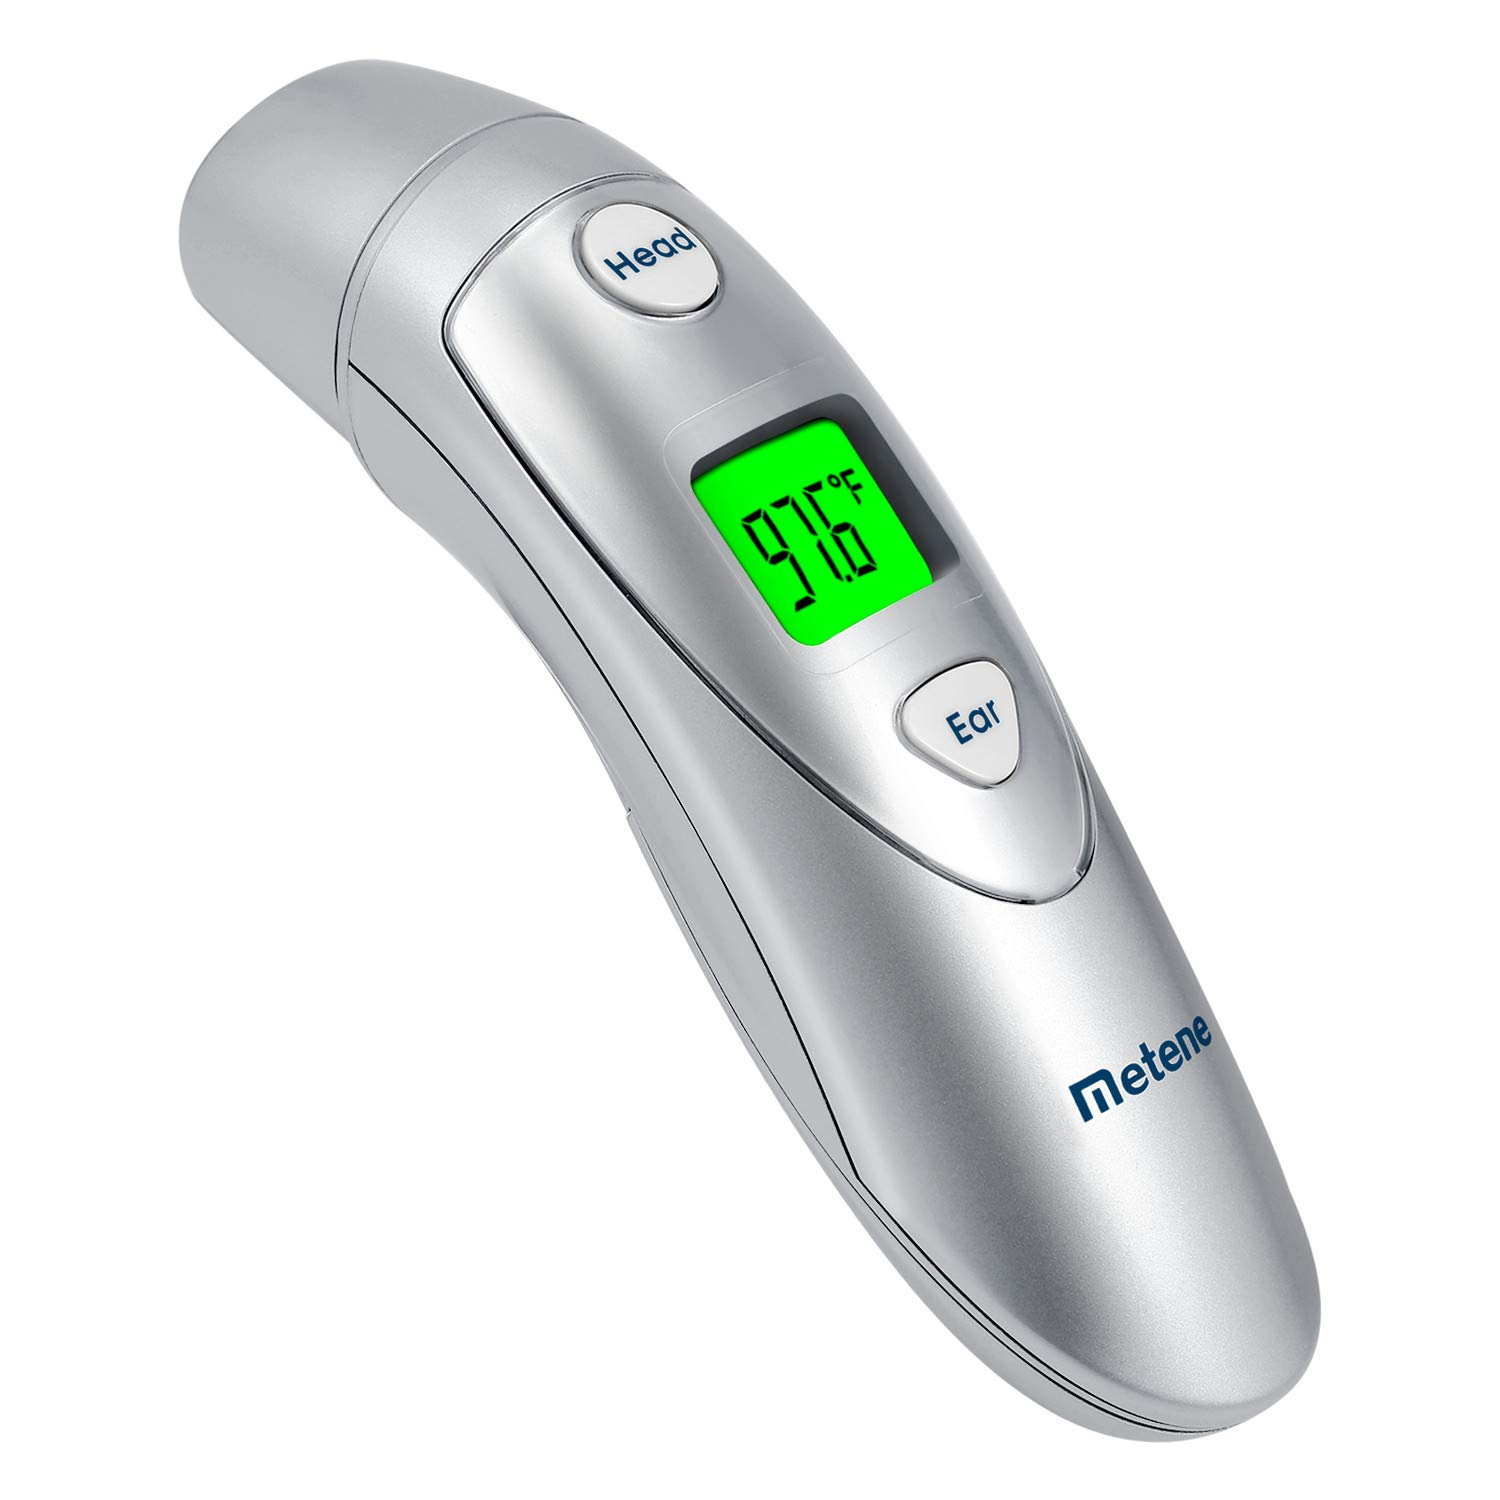 Metene Baby Thermometer with Fever Alert, Medical New Generation Digital Ear Thermometer with Forehead Function, Suitable for Baby, Kids and Adults by Metene